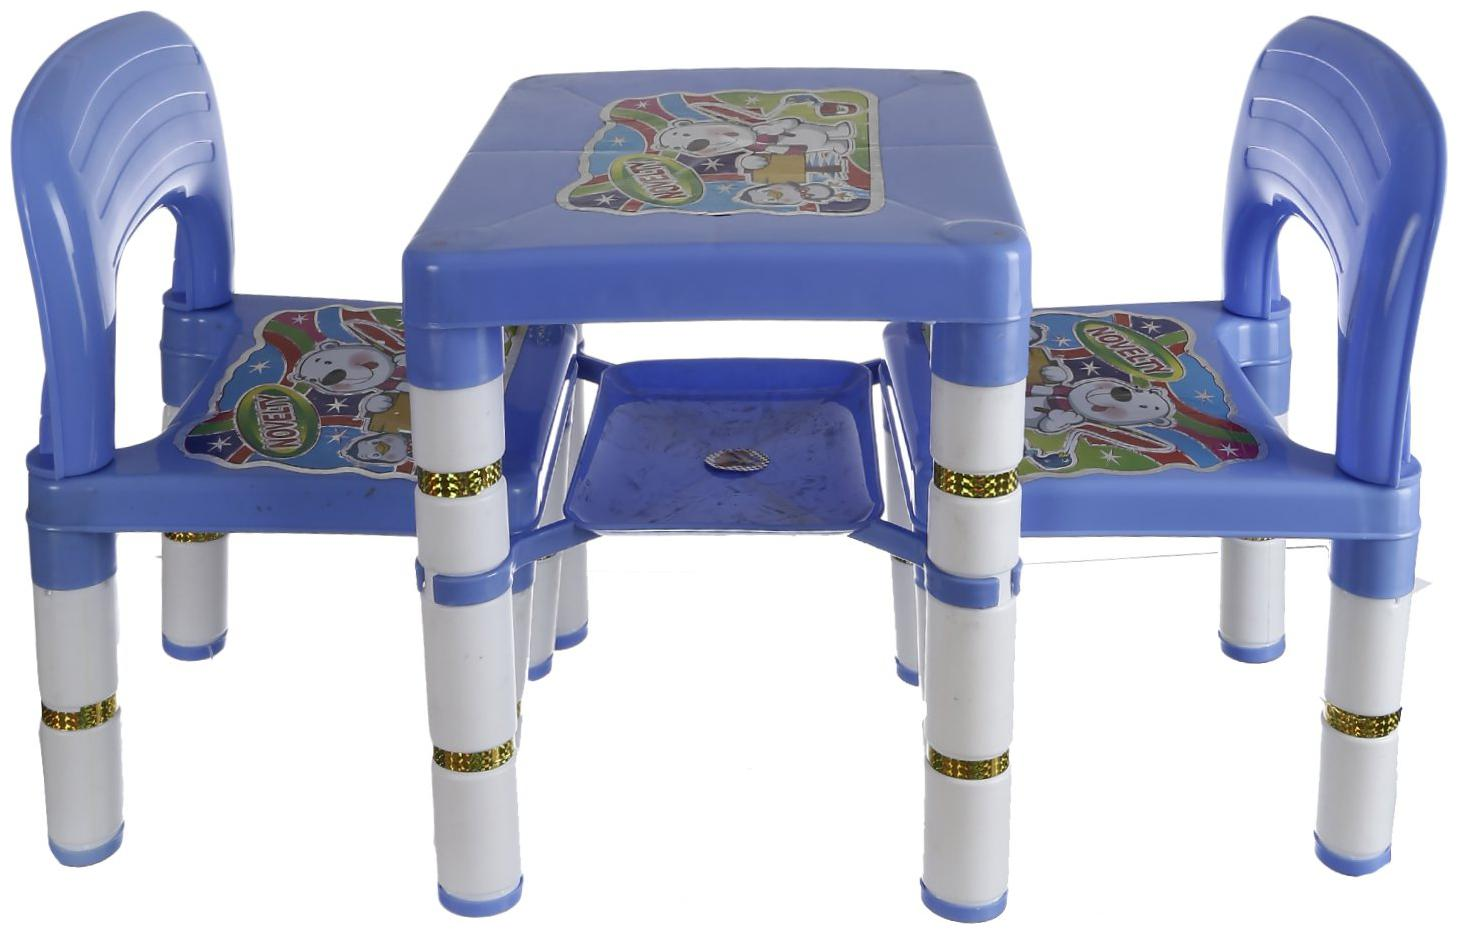 Archana Premium Quality Colorful Learning Set of 2 Chairs And Table For...